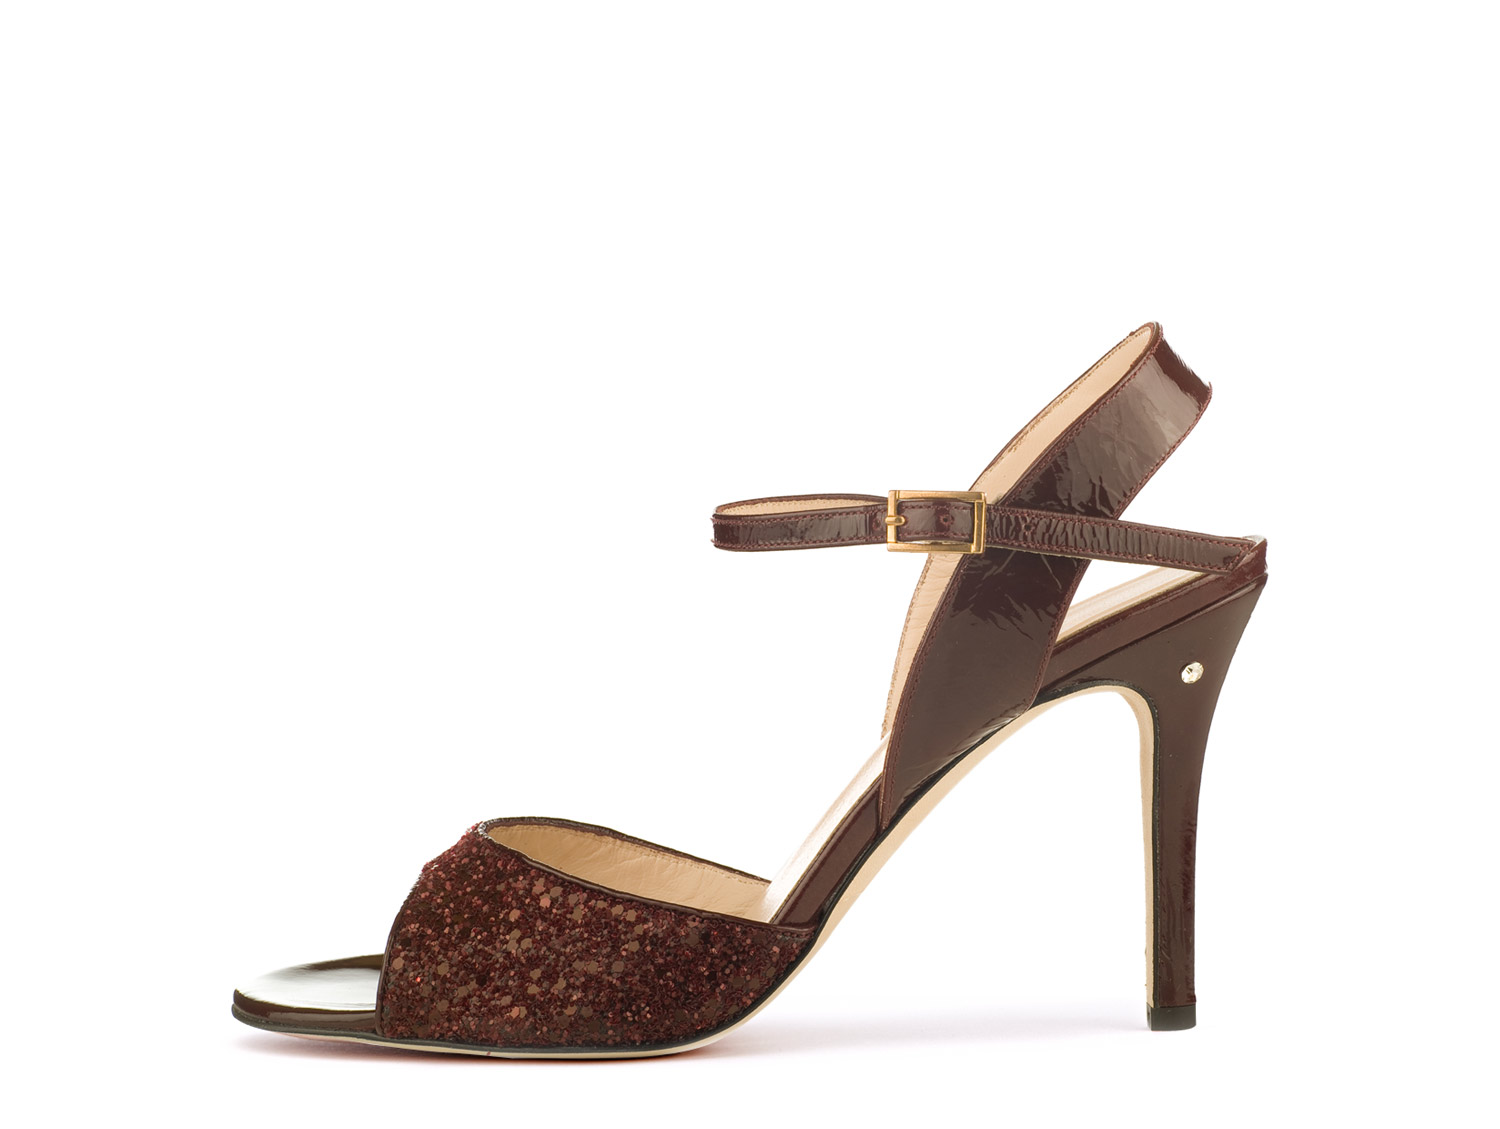 CHANTAL Vernice / Glitter Bordeaux scuro